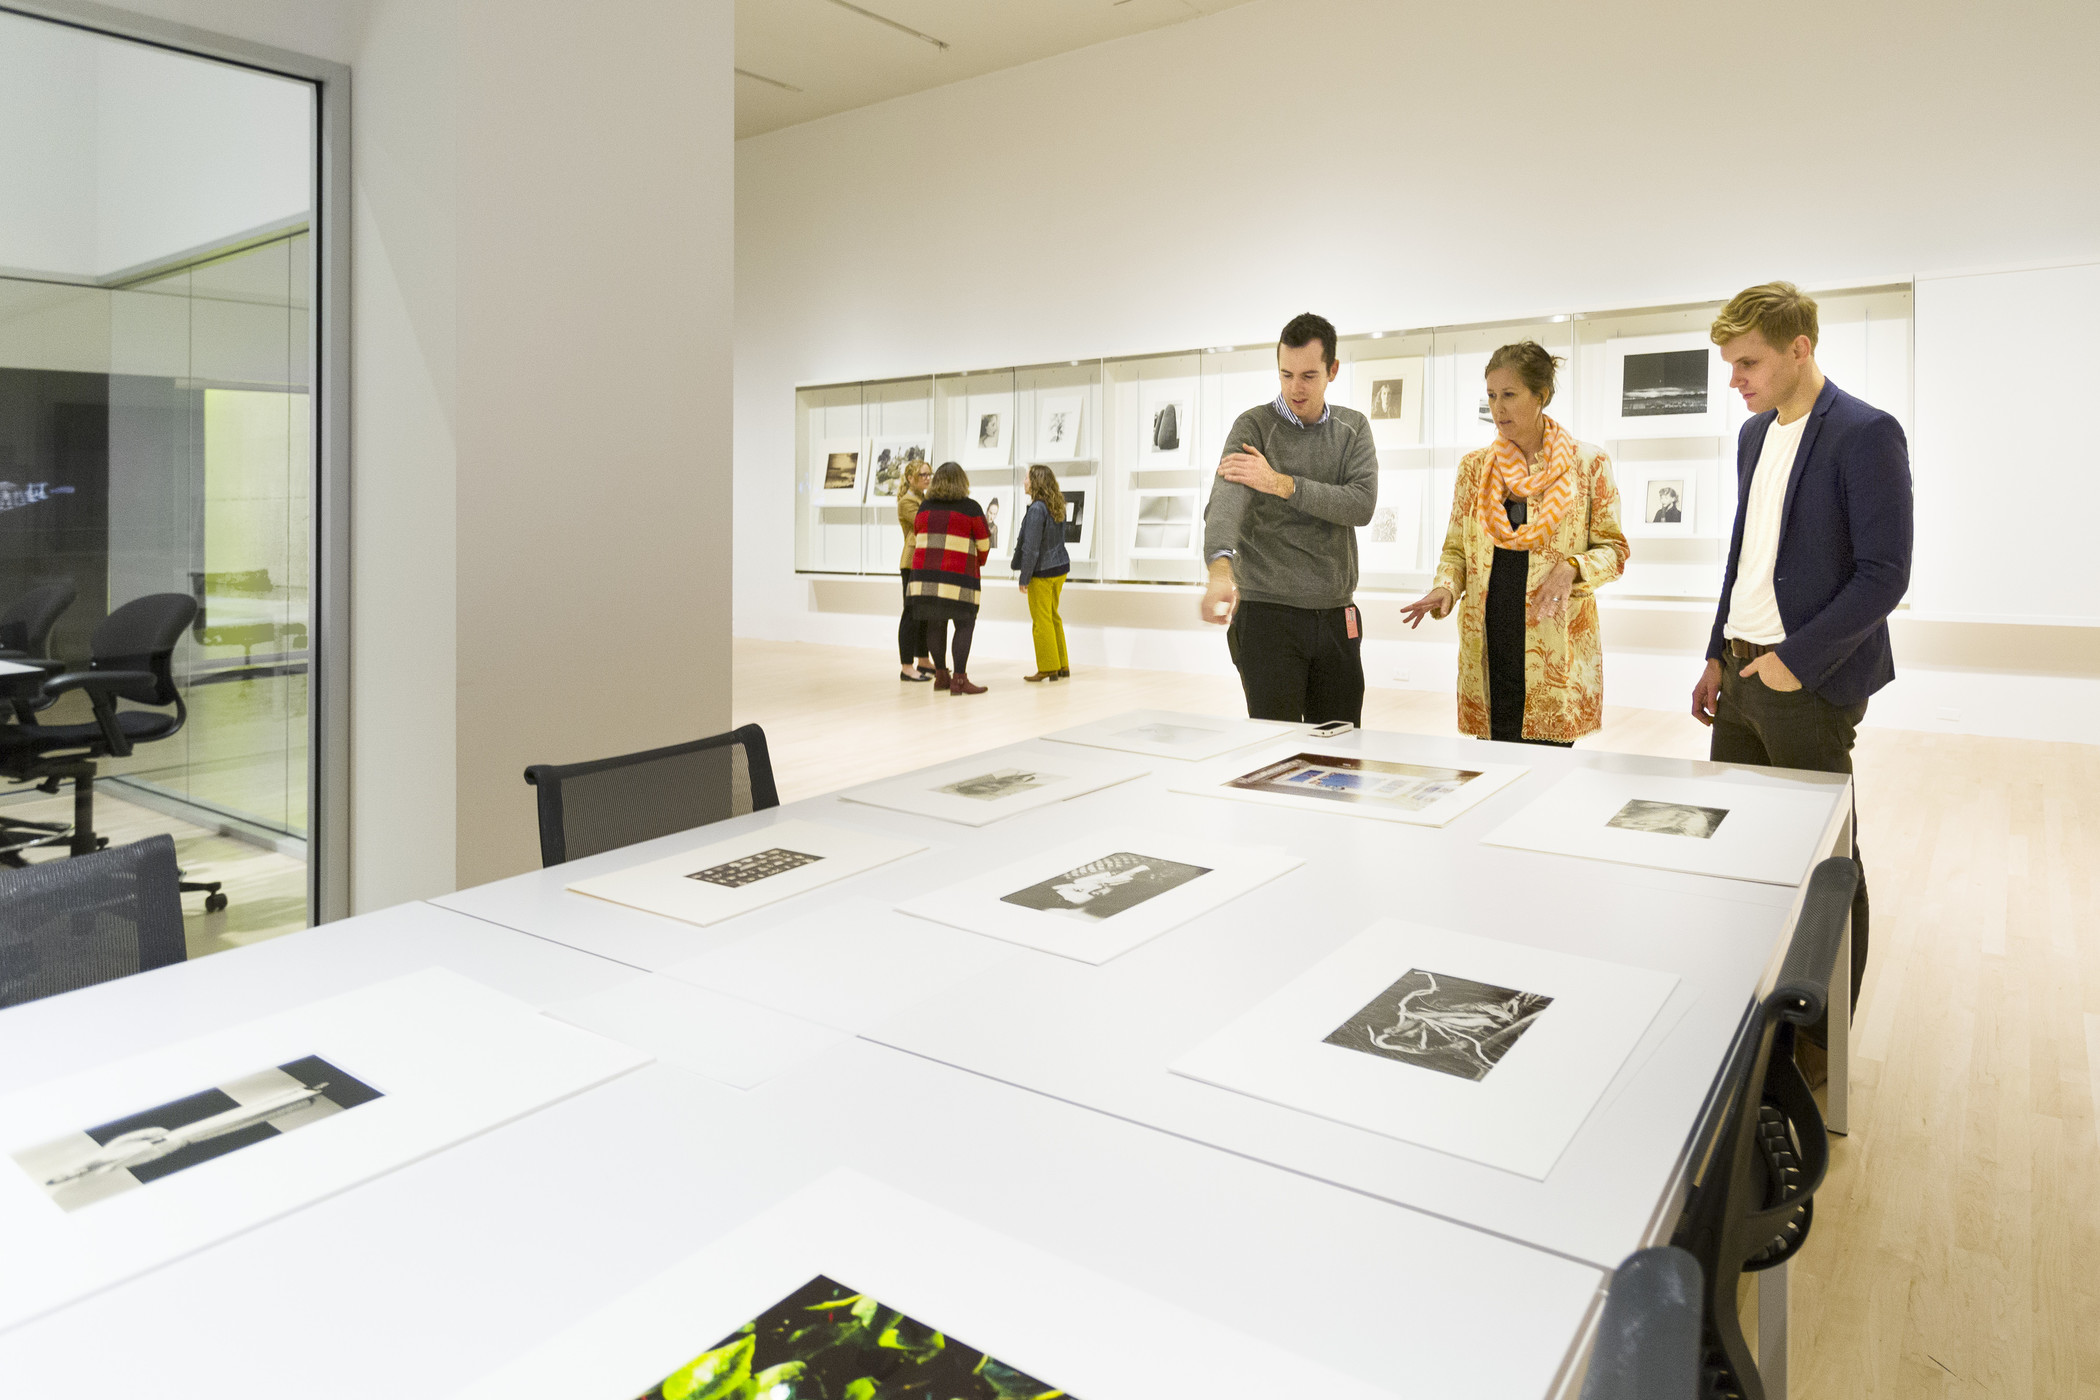 Eve Schillo with visitors in the Study Center for Photography and Works on Paper at the Los Angeles County Museum of Art, photo © Museum Associates/LACMA